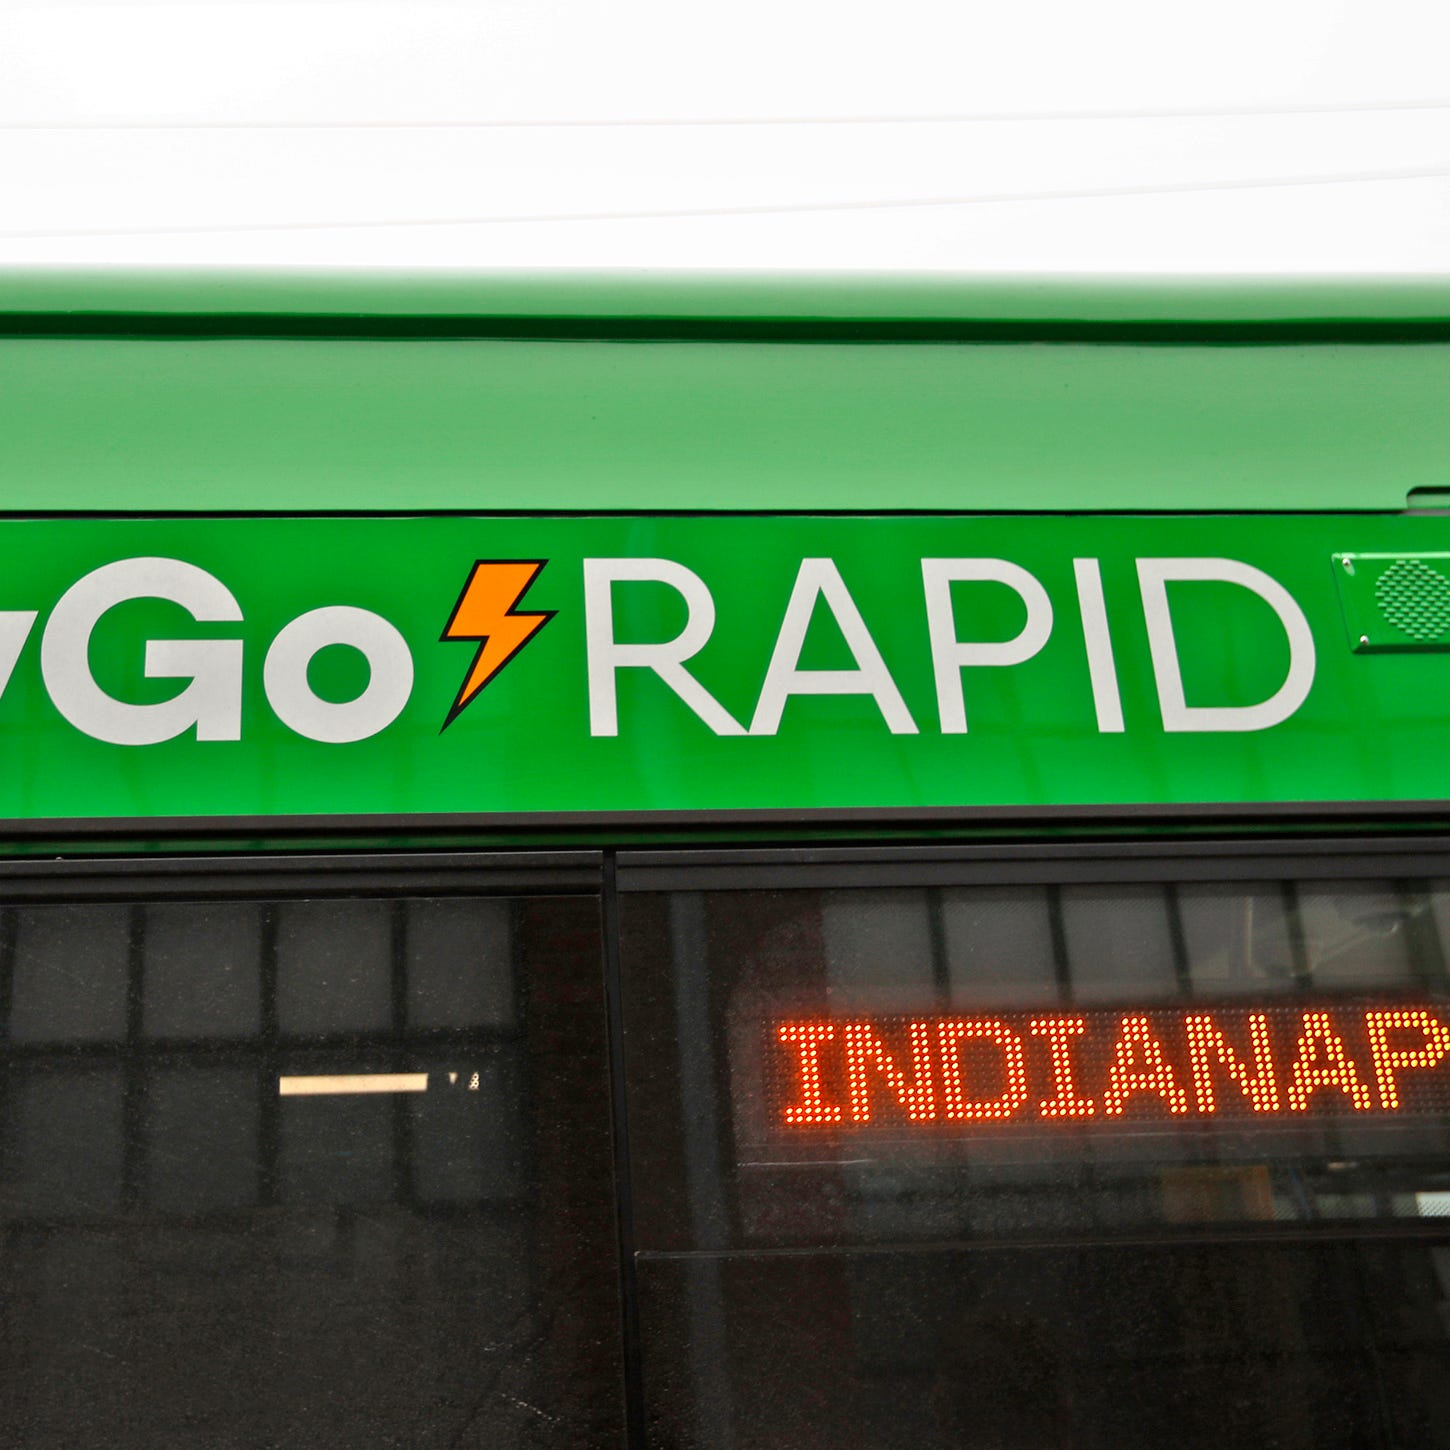 IndyGo Red Line electric buses weren't going far enough on a charge, so they're getting a tech fix